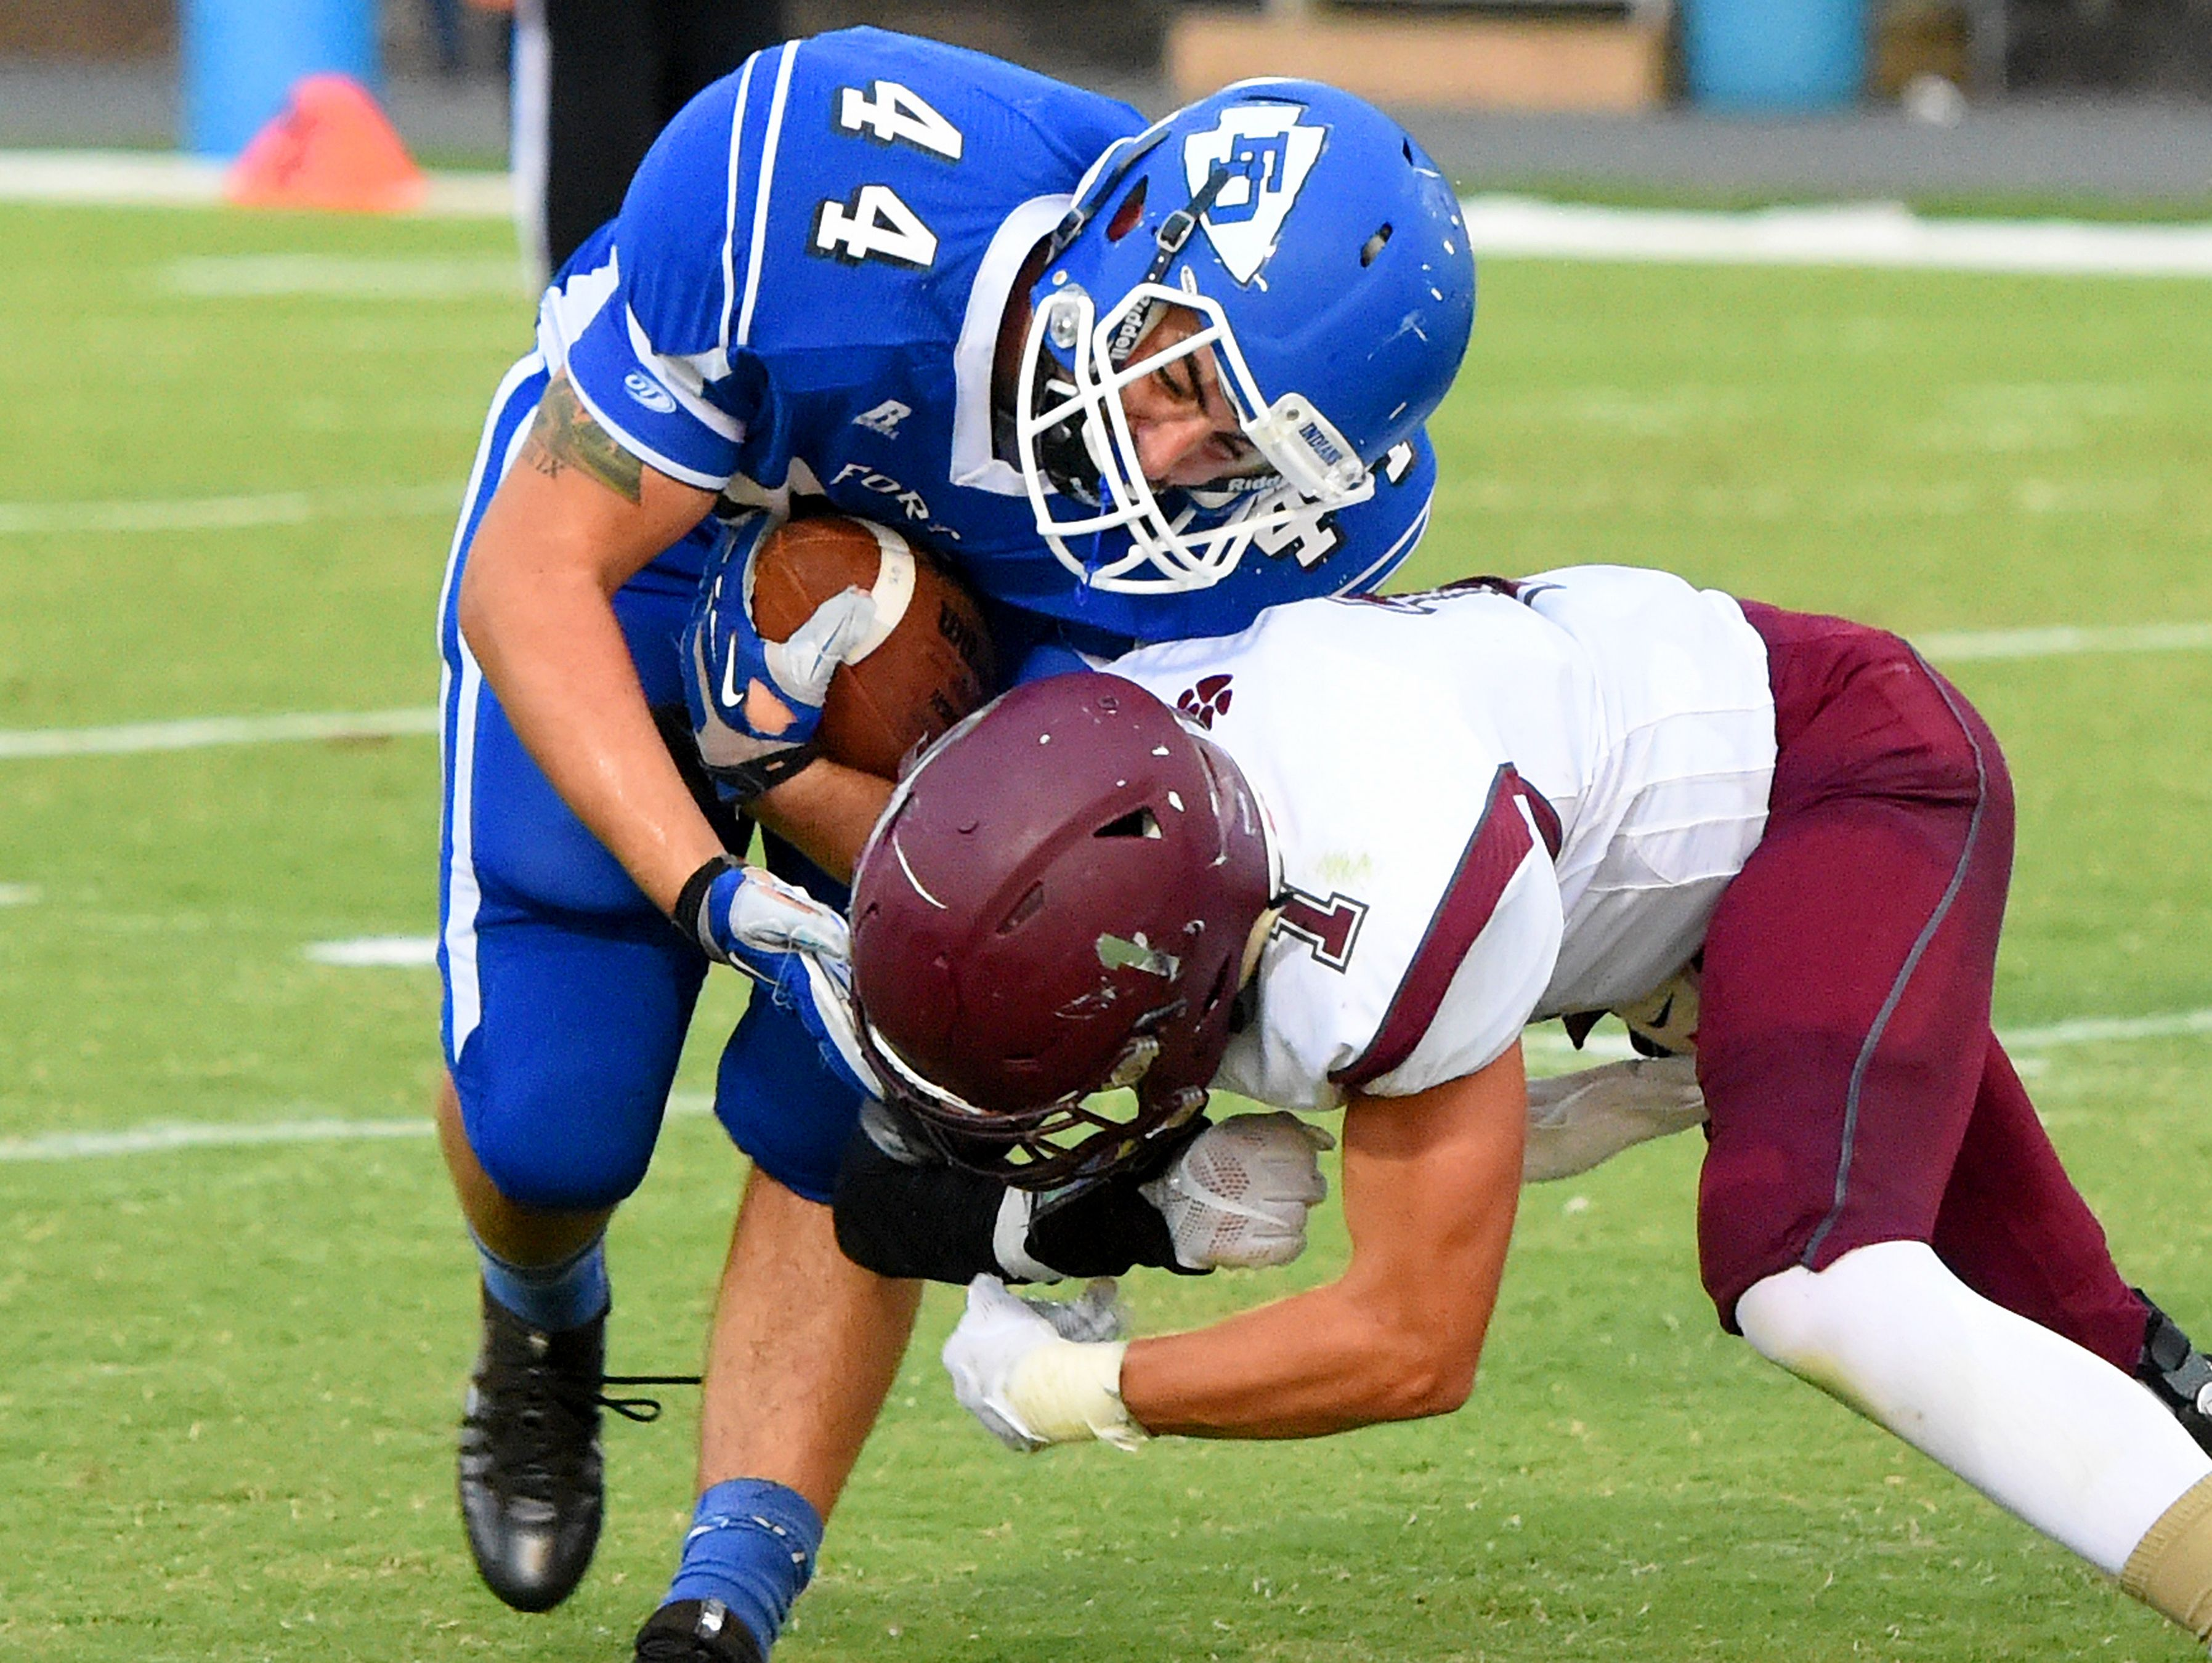 Fort Defiance's Austin Fitzwater holds onto the football as Stuarts Draft's Robert Peck slams into him for the tackle during a football game played in Fort Defiance on Friday, Sept. 2, 2016.